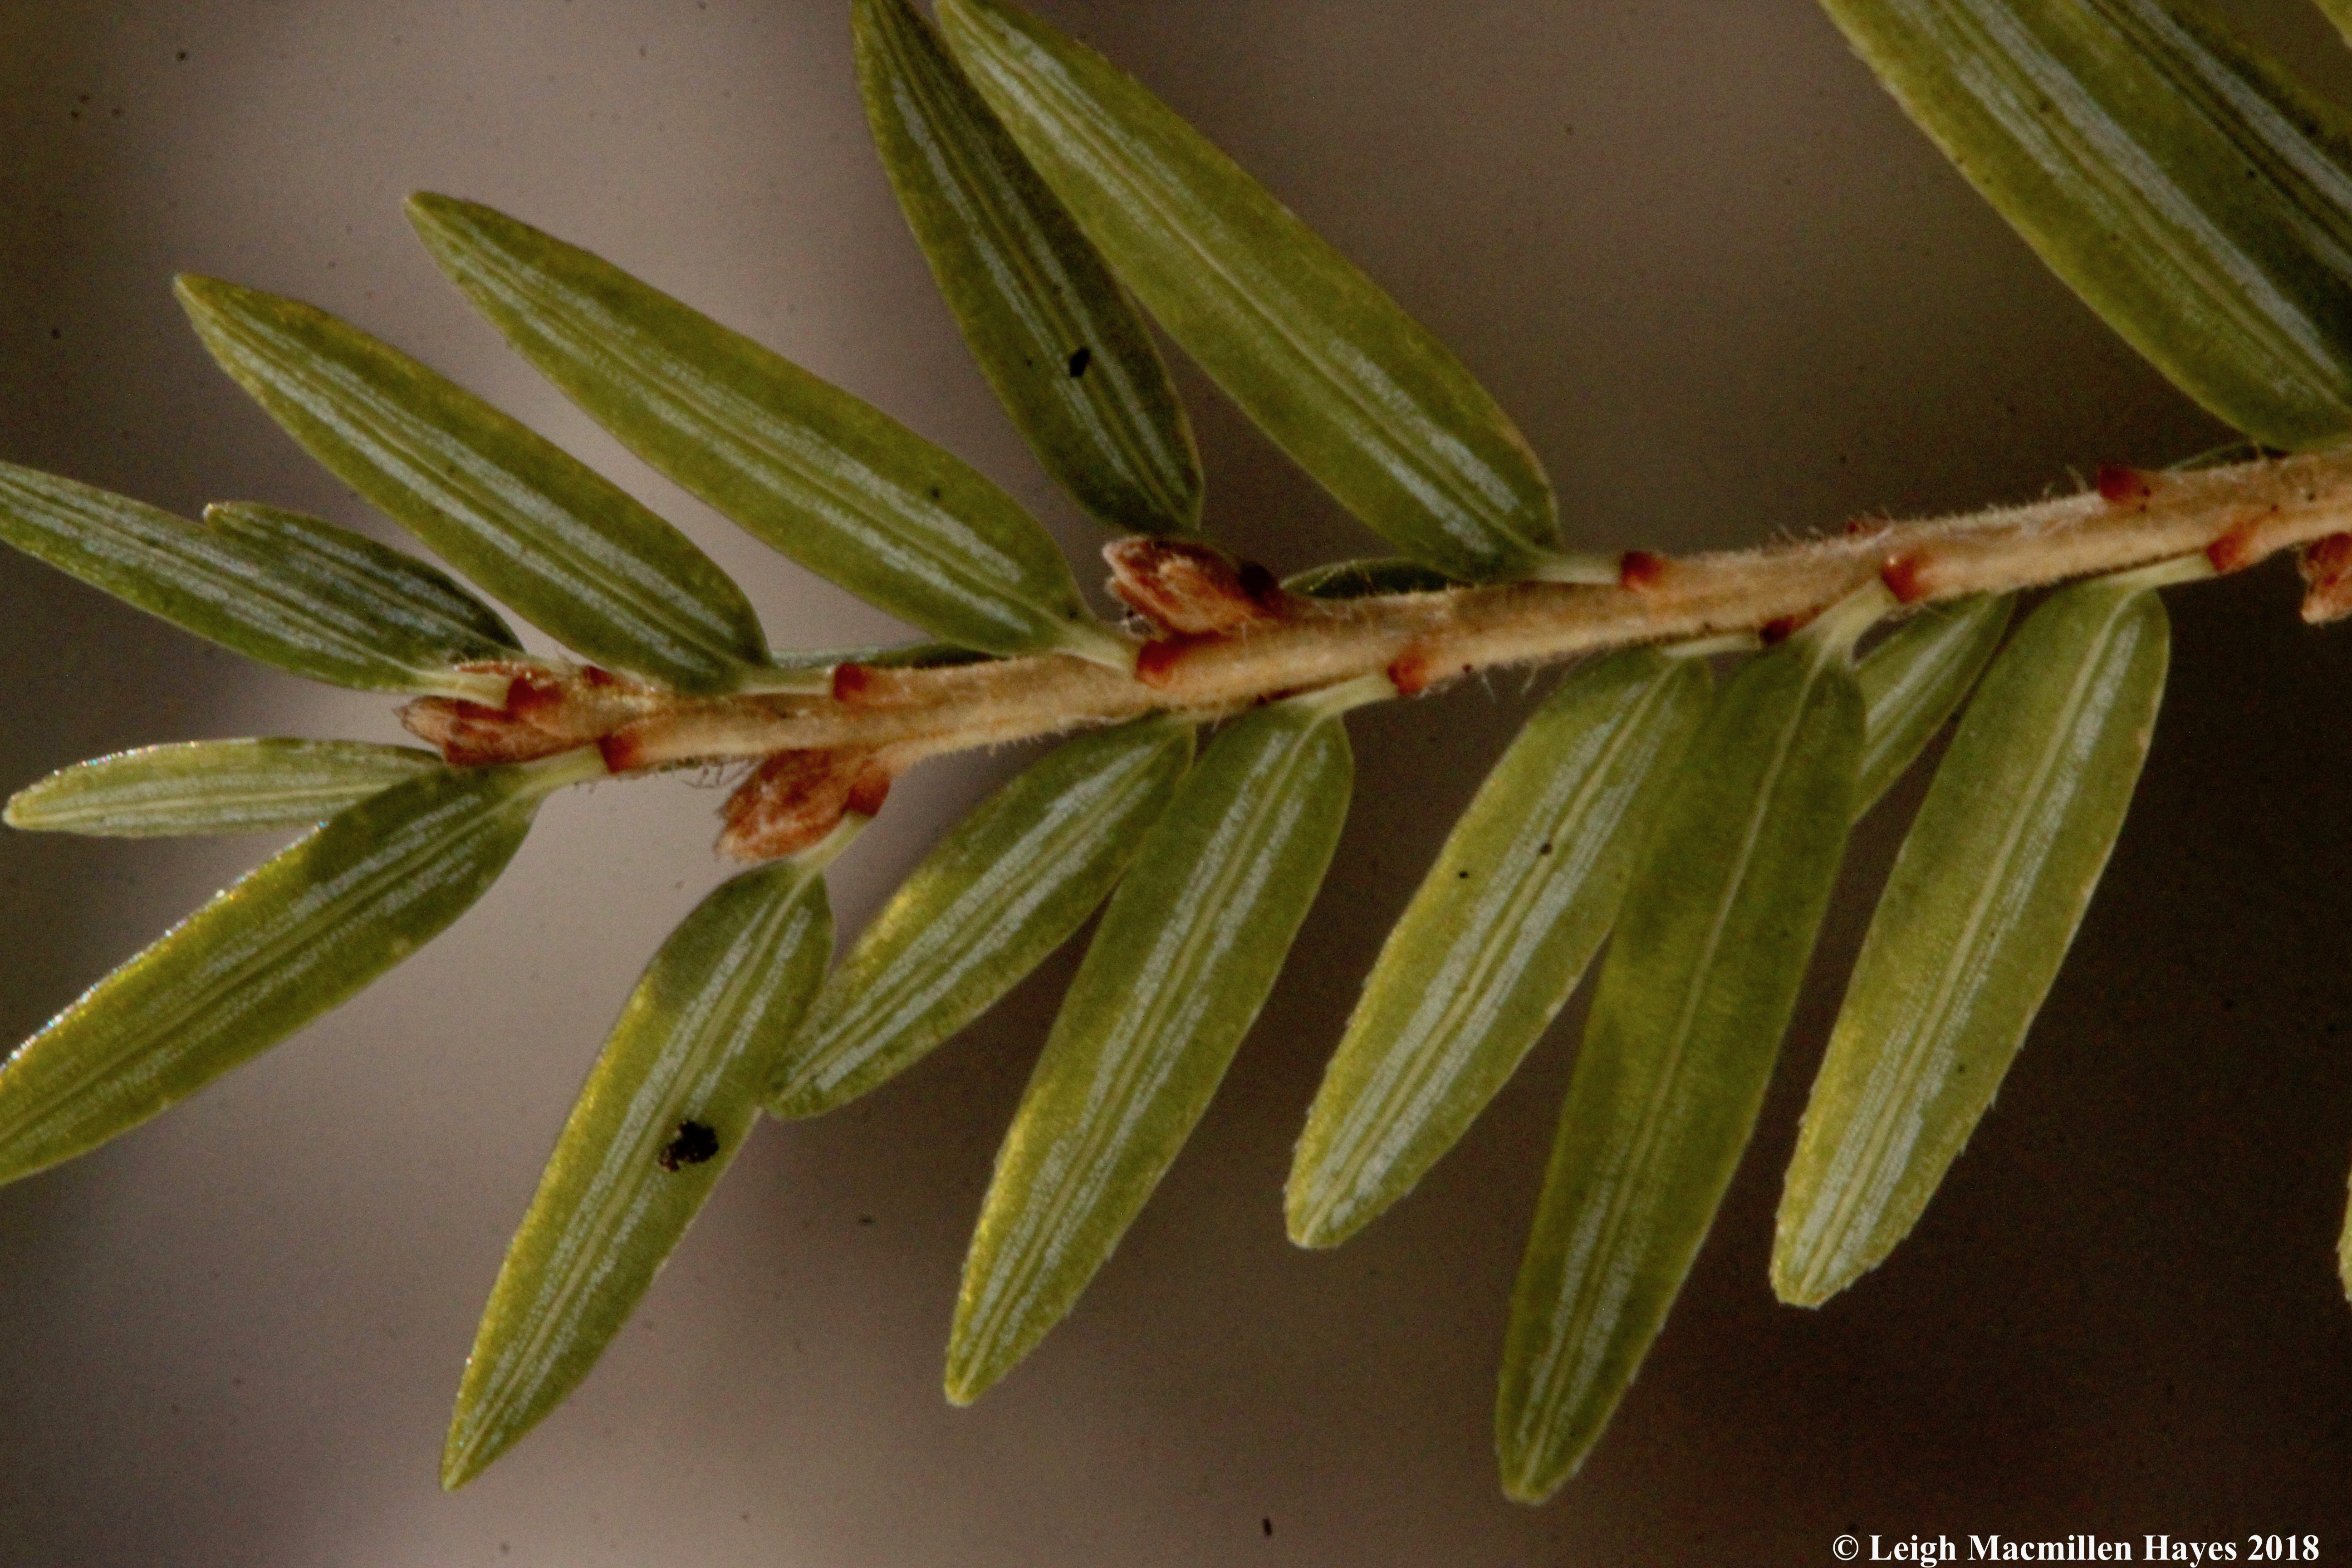 e-hemlock petioles (stems) and stomata lines